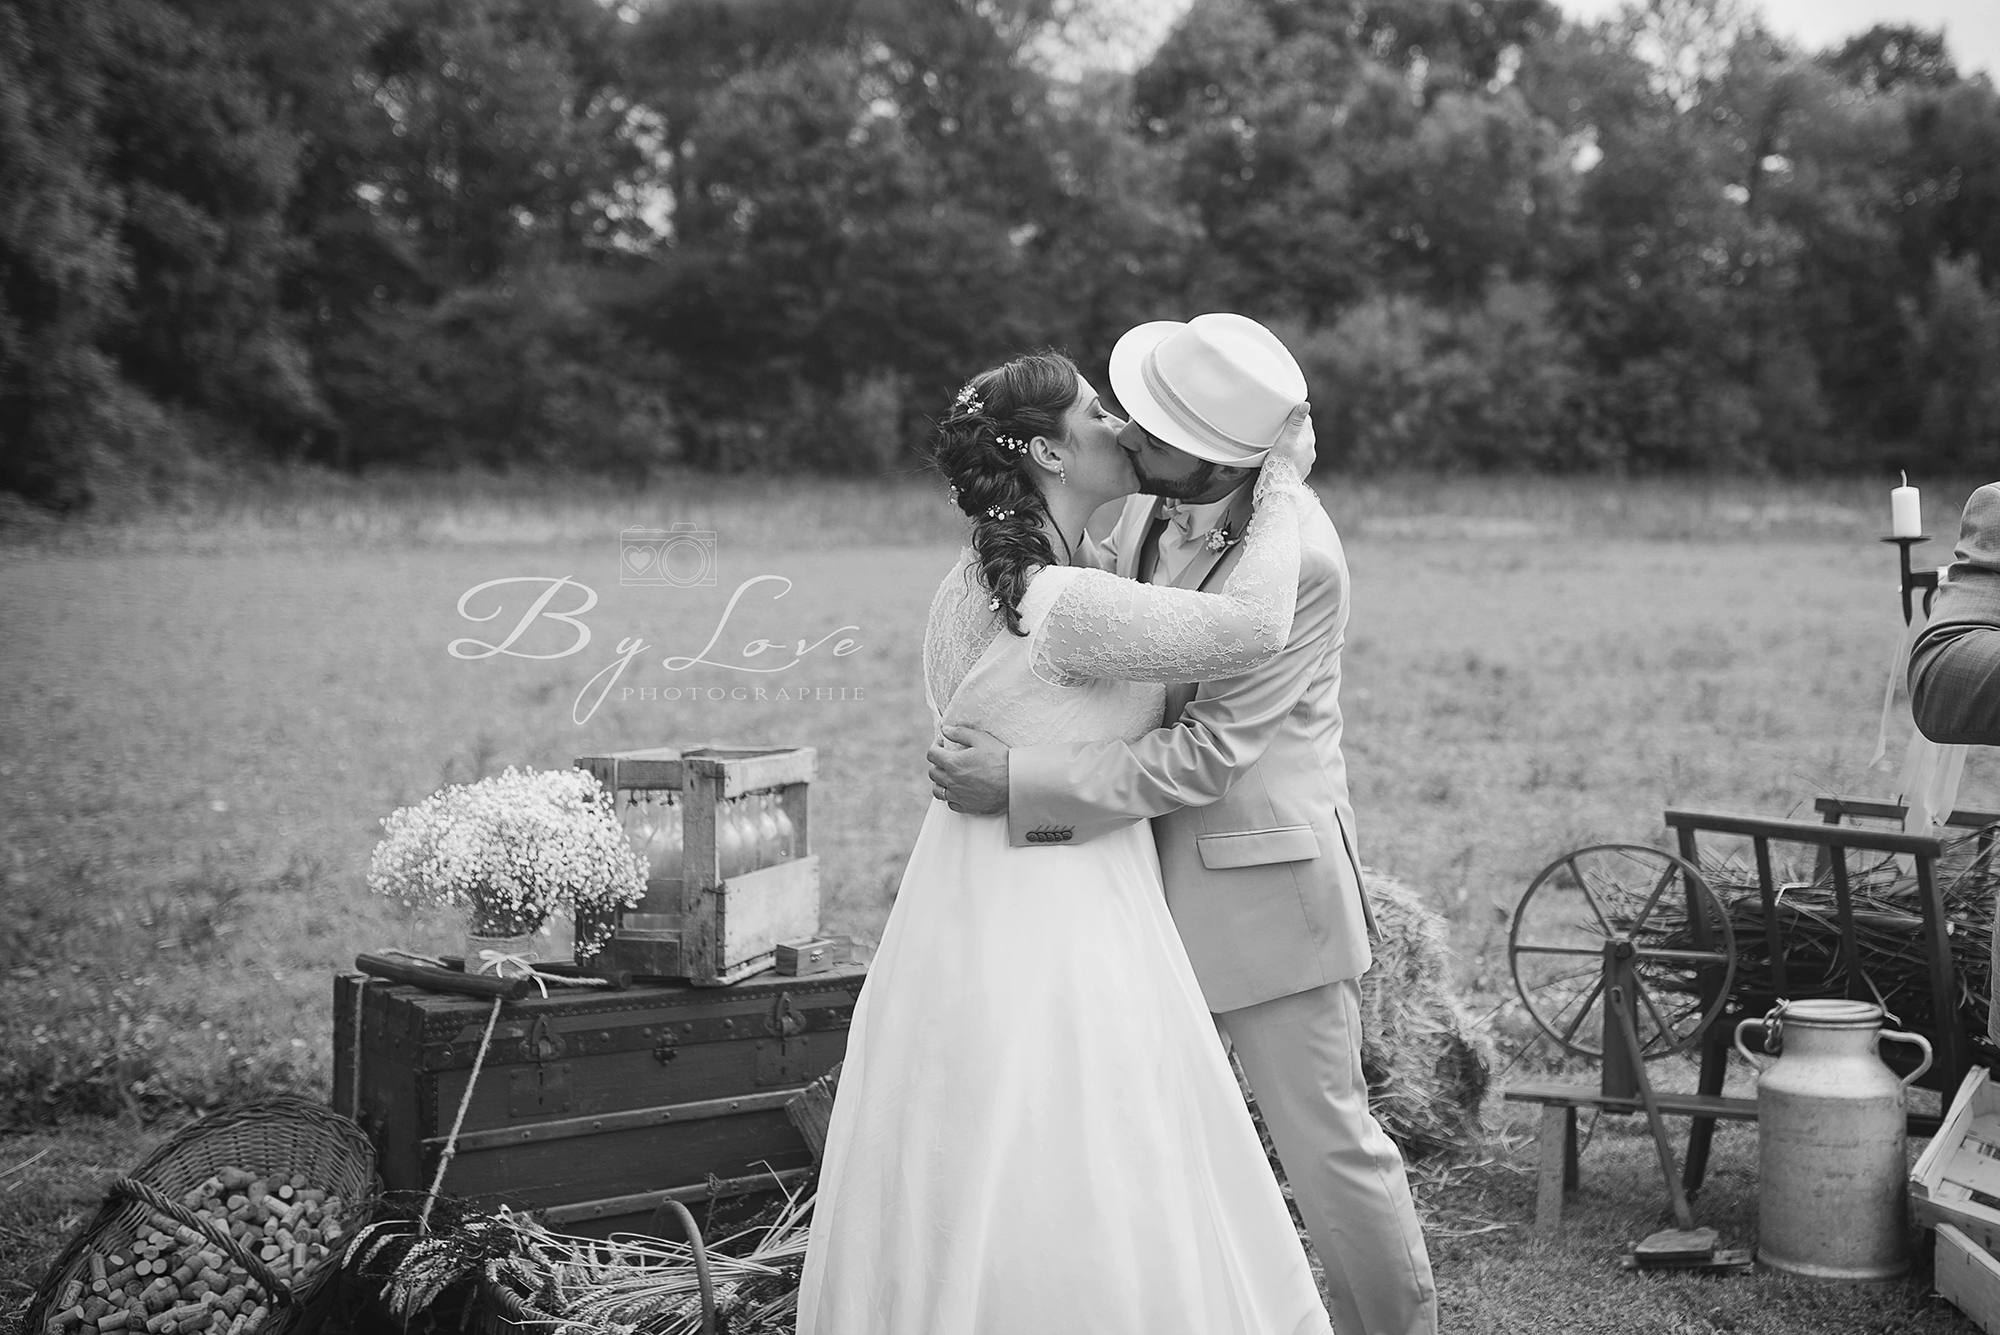 photographe-professionnel-pas-cher-mariage-crazy-in-love